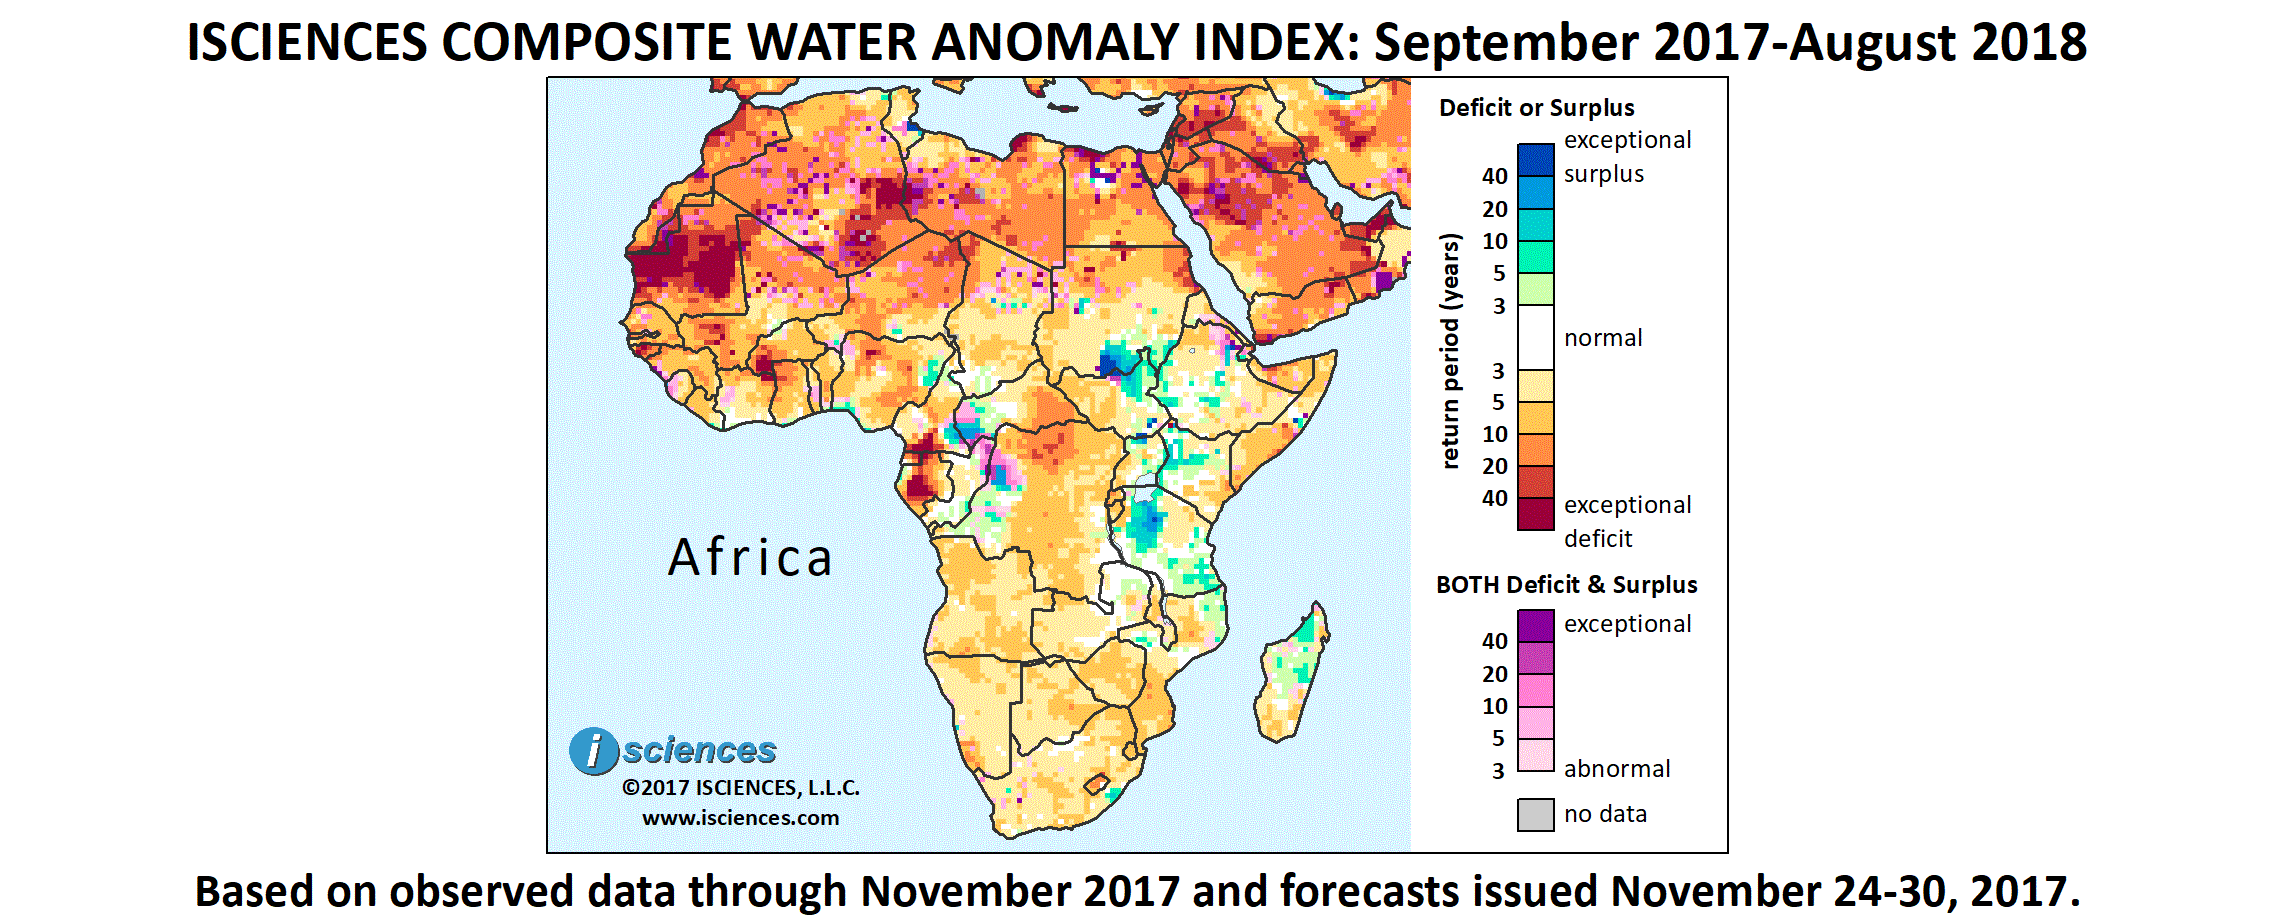 ISciences_Africa_R201711_12mo_twit_pic.png